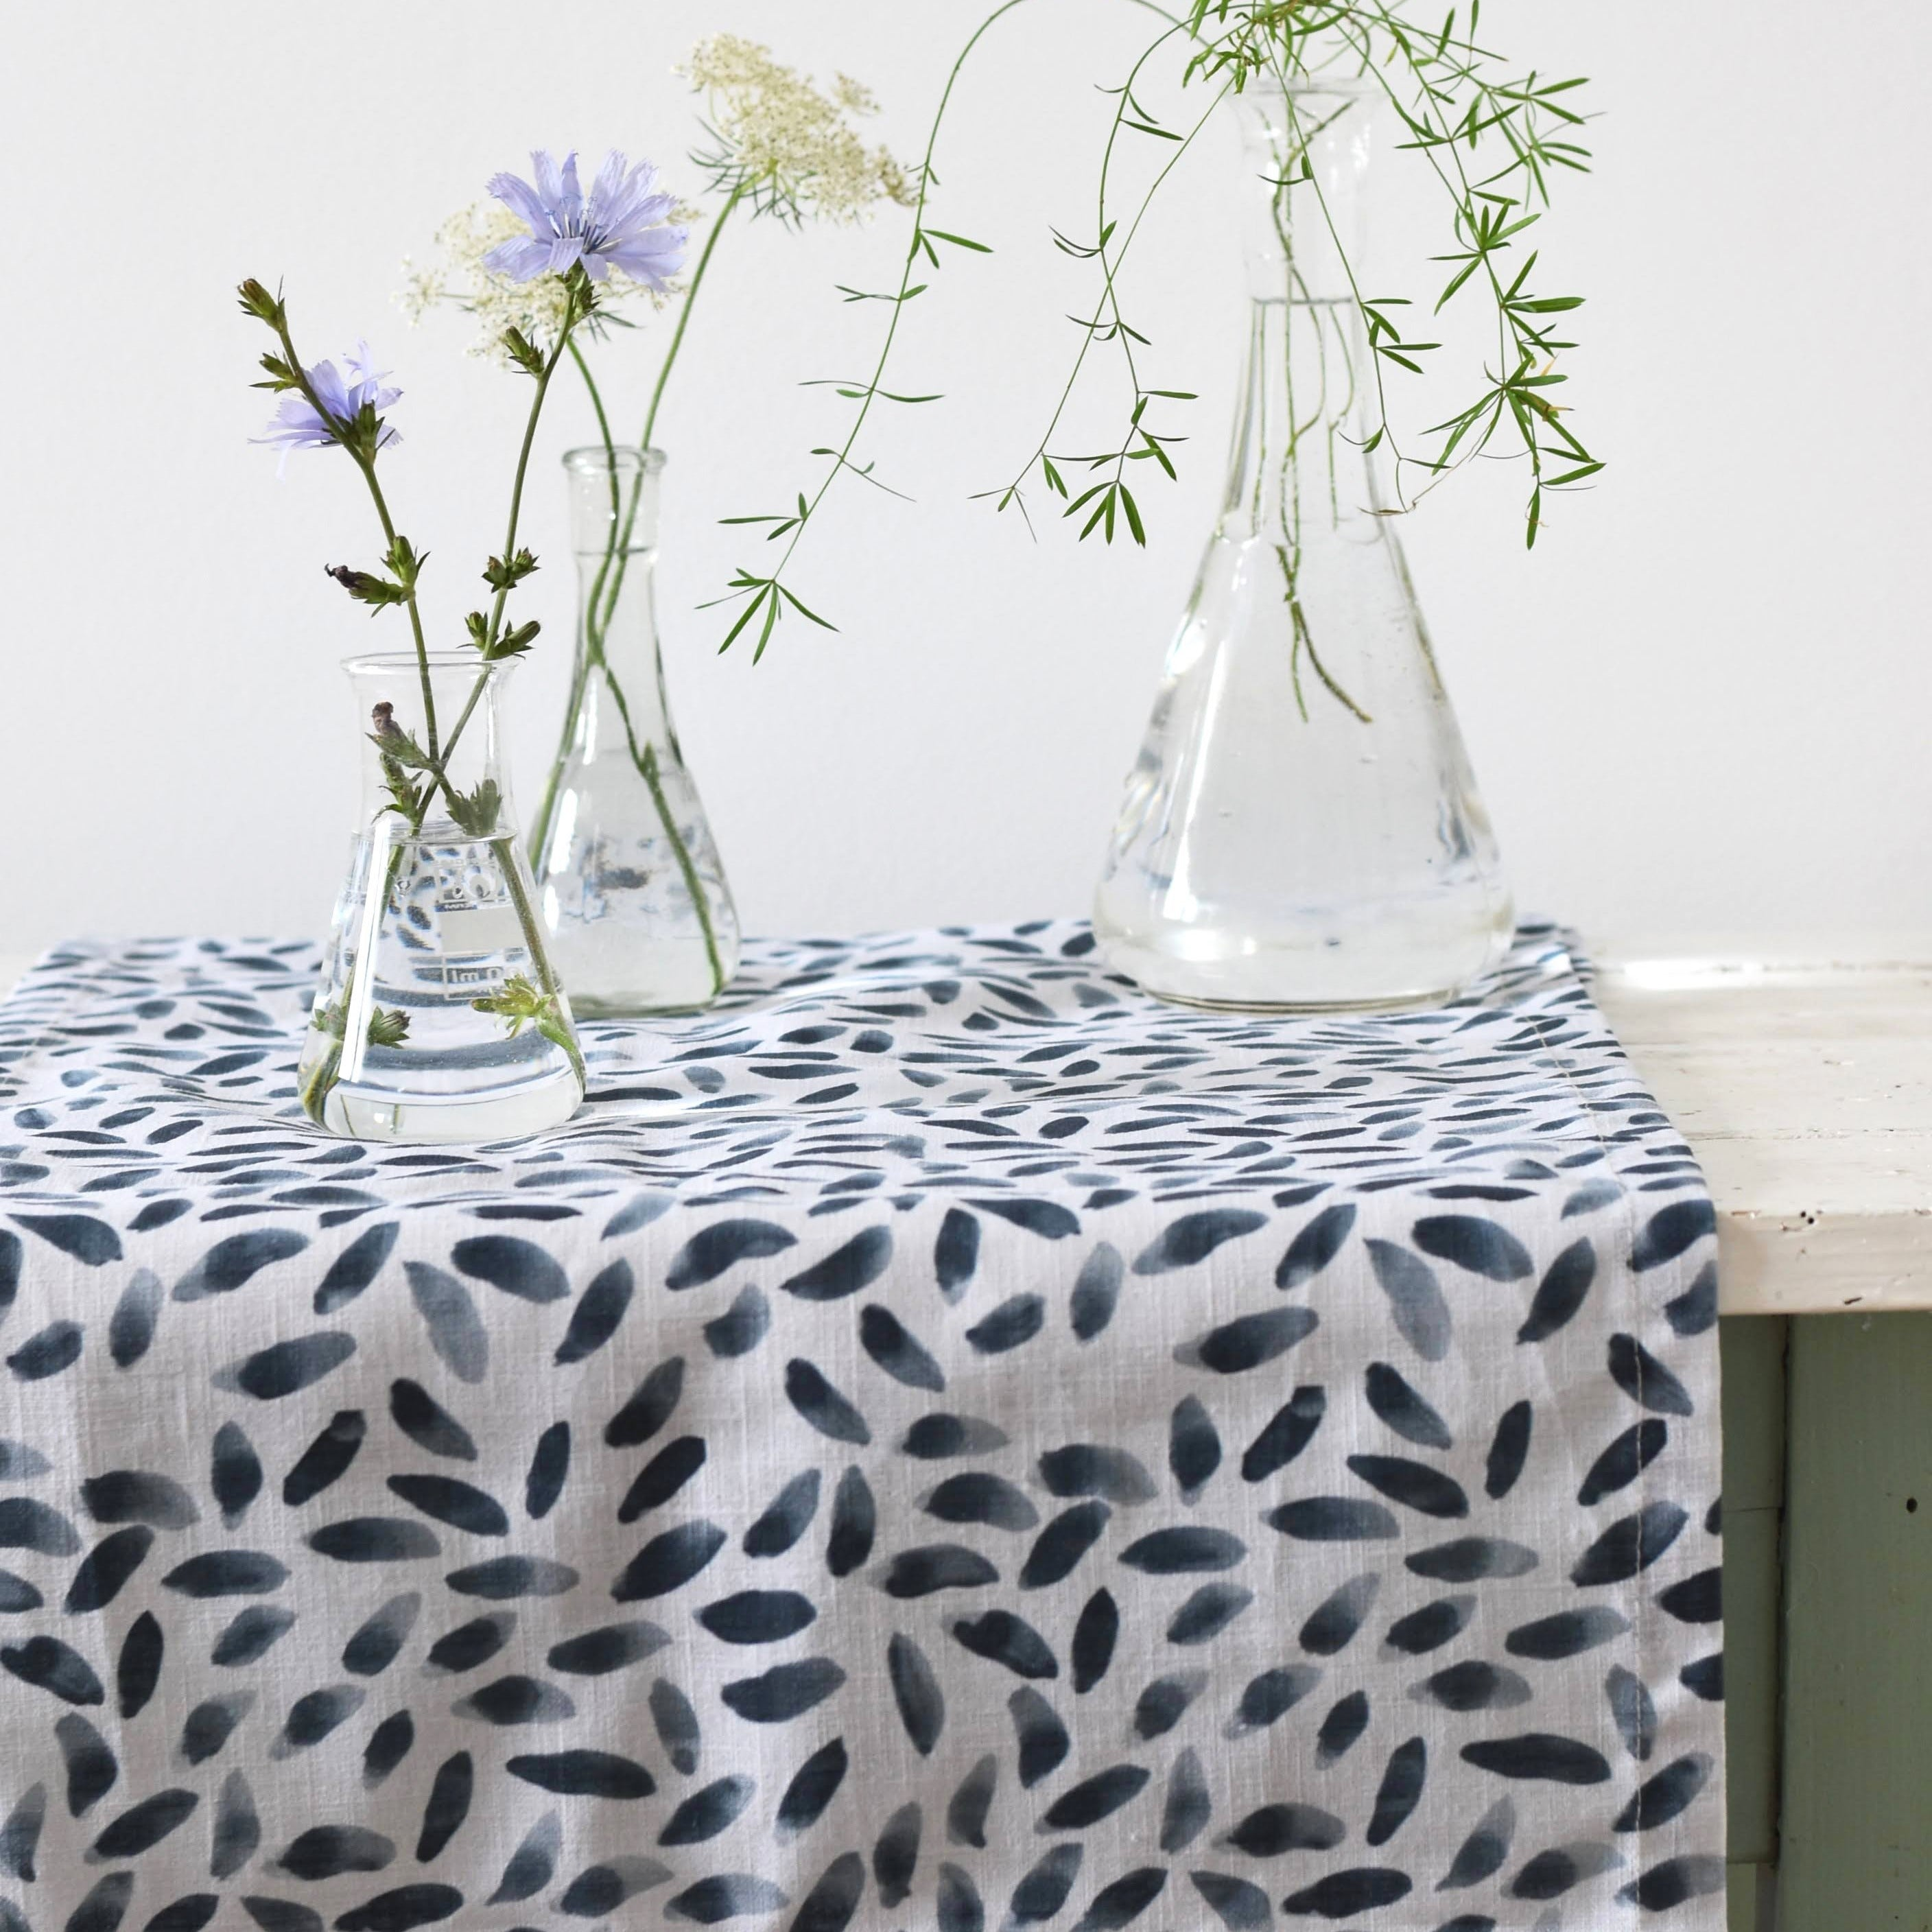 Table runner - Petals in deep blue - listliving